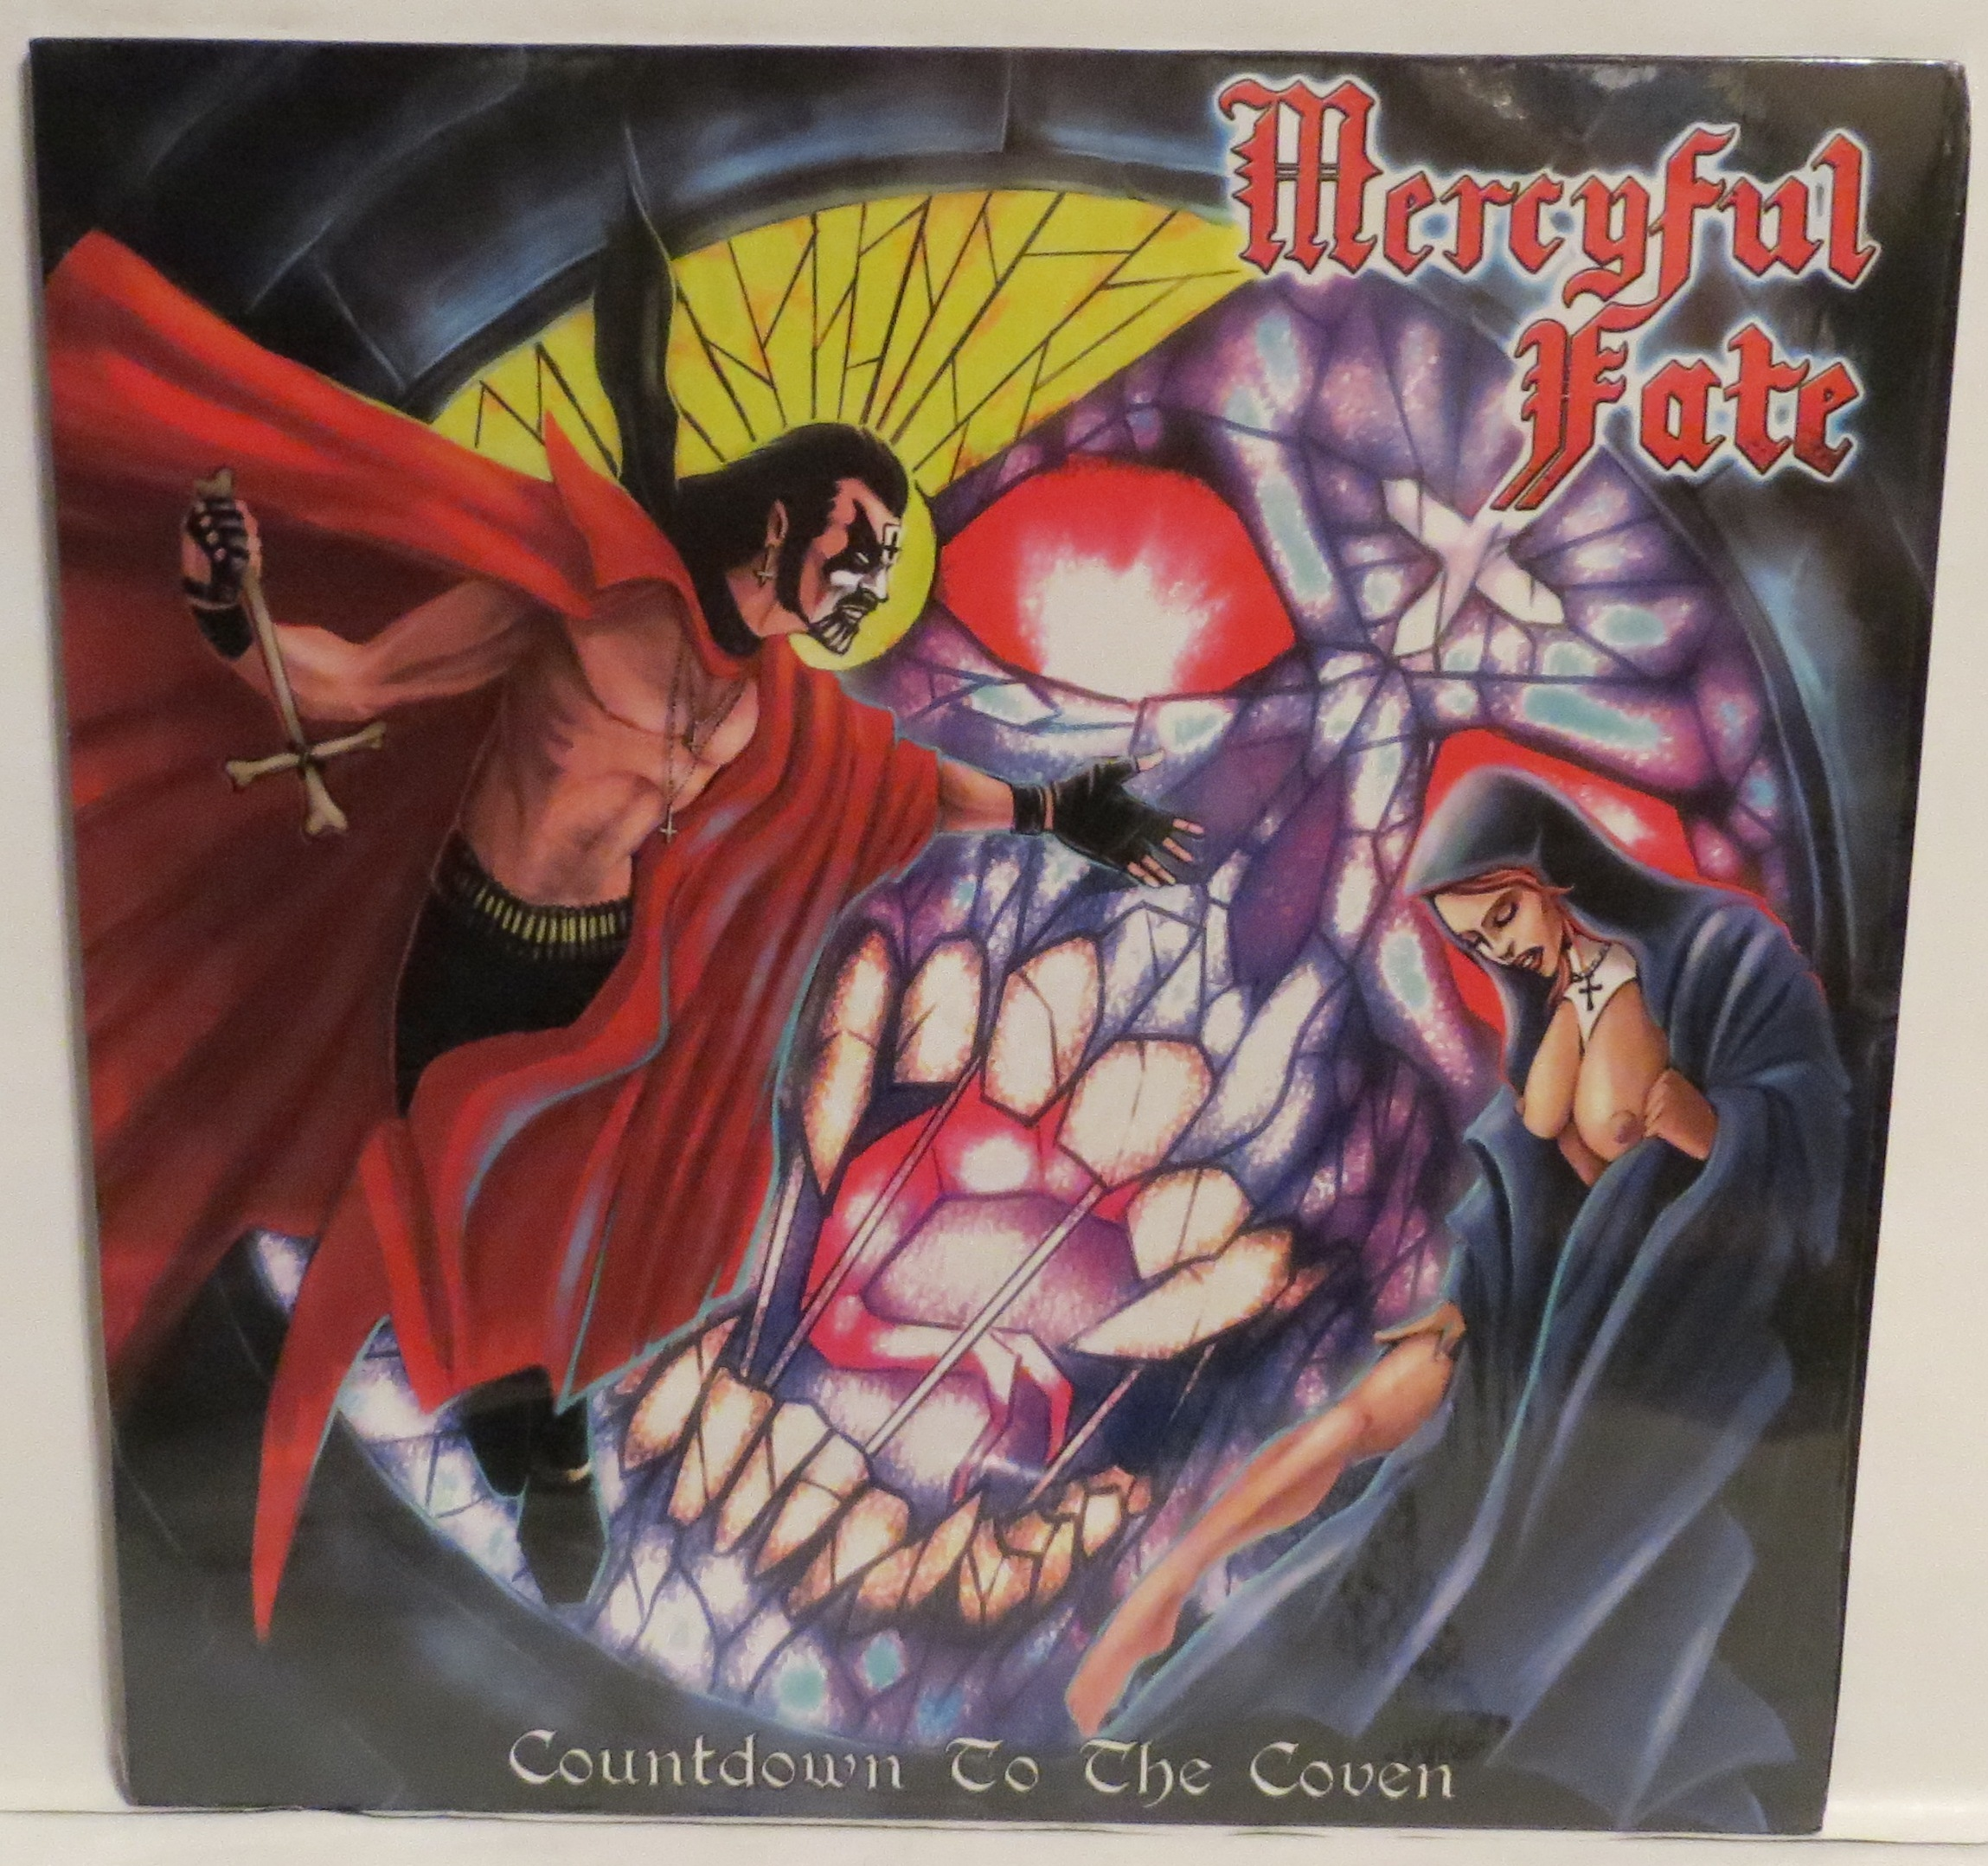 Mercyful Fate Countdown To The Coven Black Vinyl LP